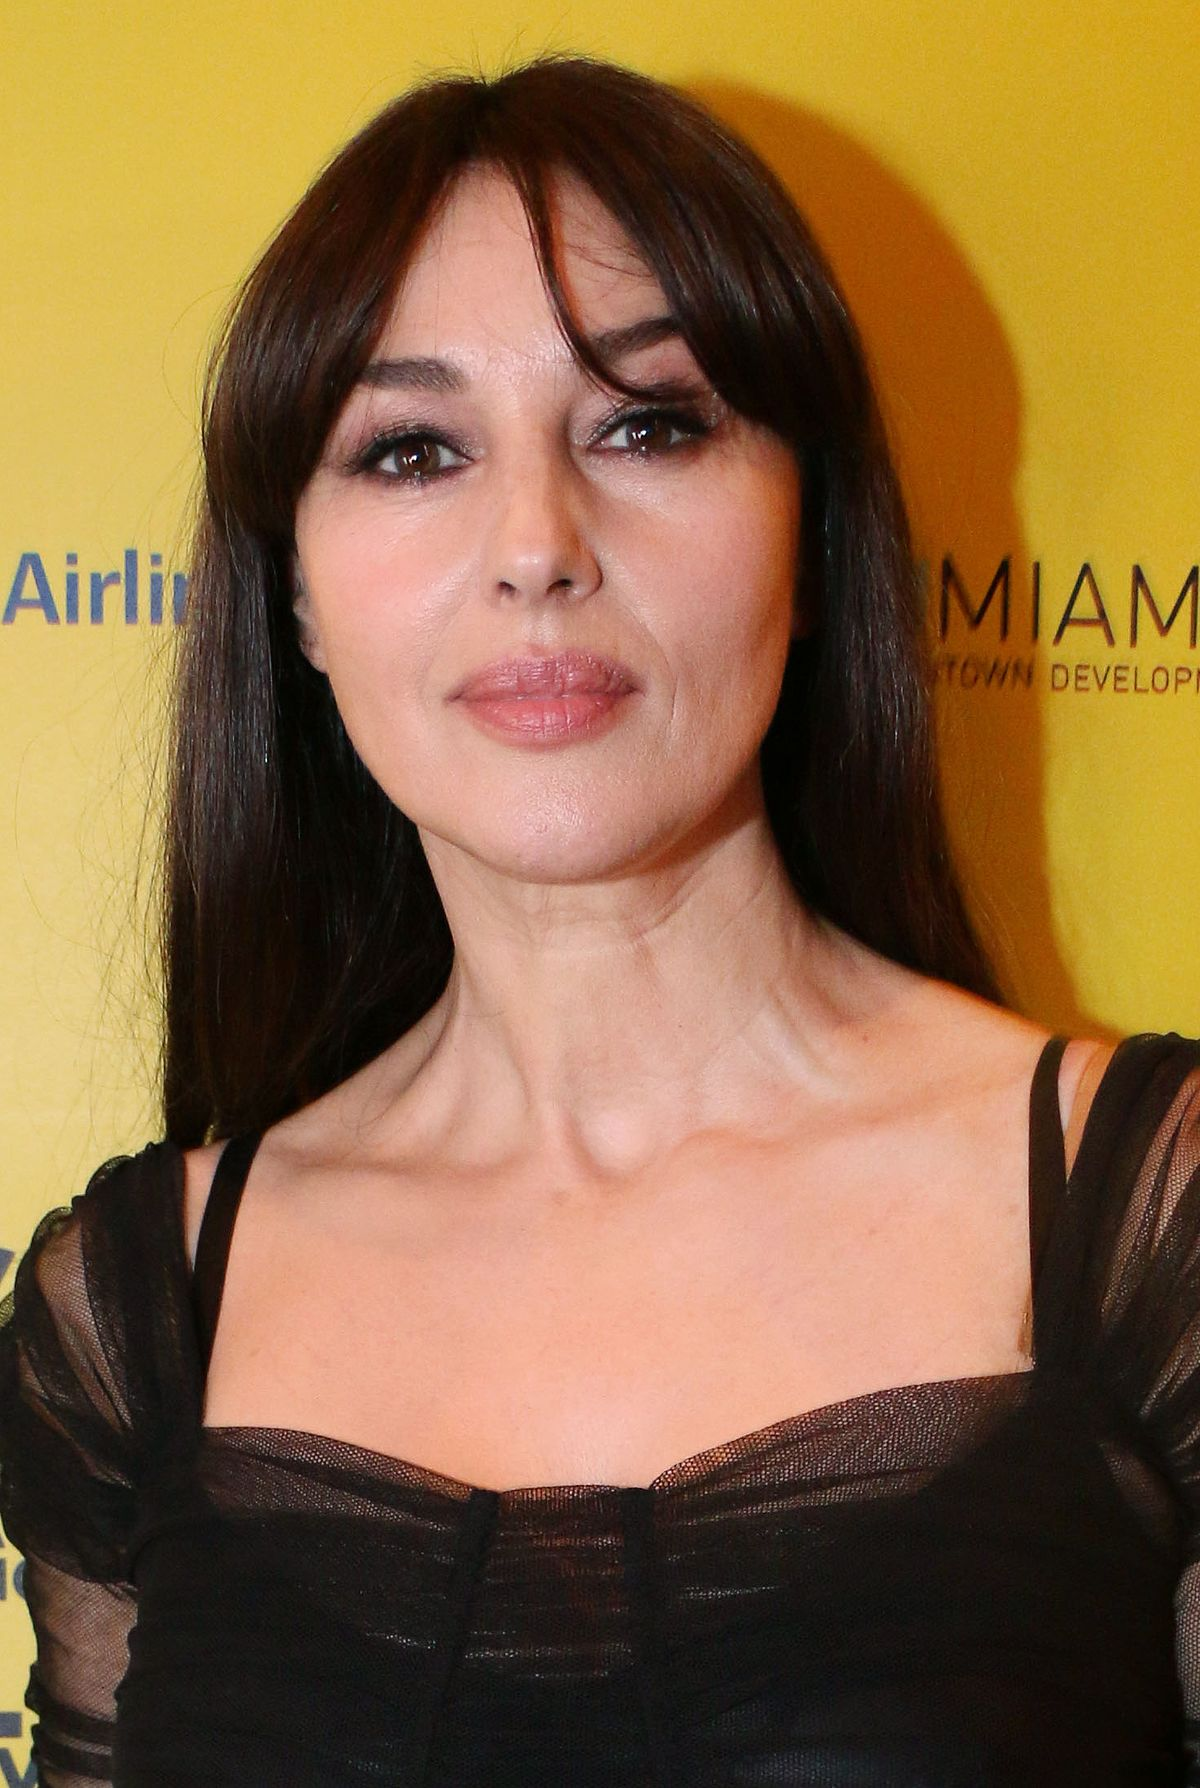 monica bellucci wikipedia. Black Bedroom Furniture Sets. Home Design Ideas